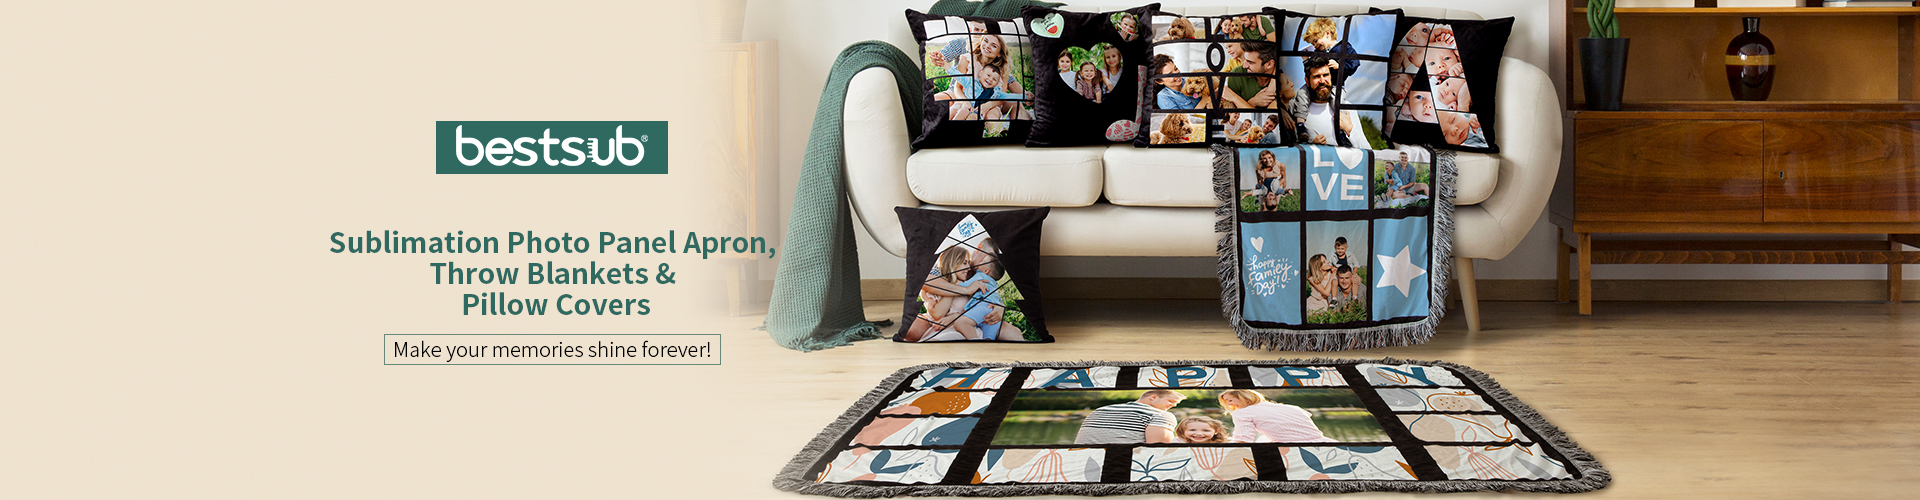 2021-03-24_Sublimation_Photo_Panel_Apron,_Throw_Blankets_Pillow_Covers_new_web